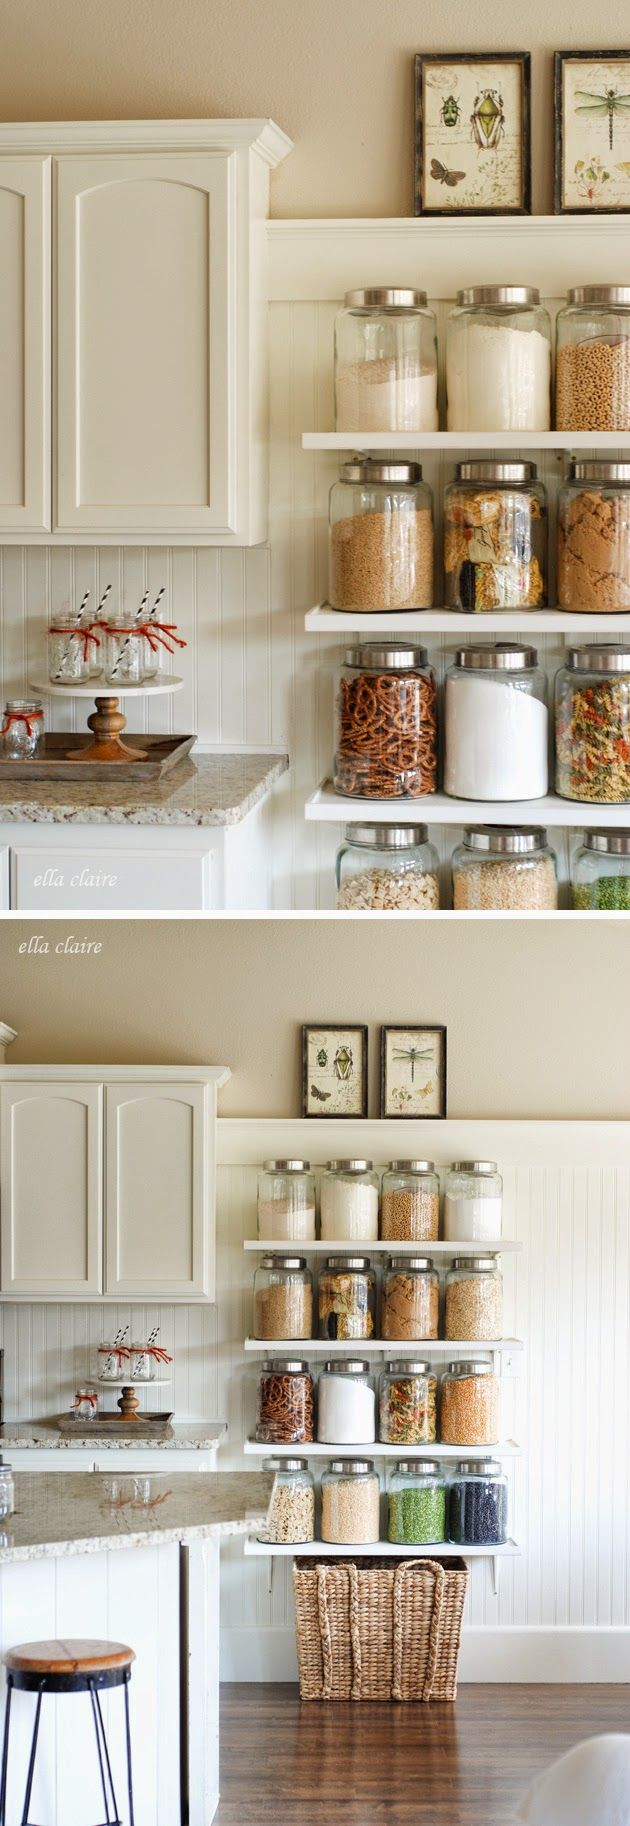 293 best DIY Kitchen Decor images on Pinterest | Decorating tips ...